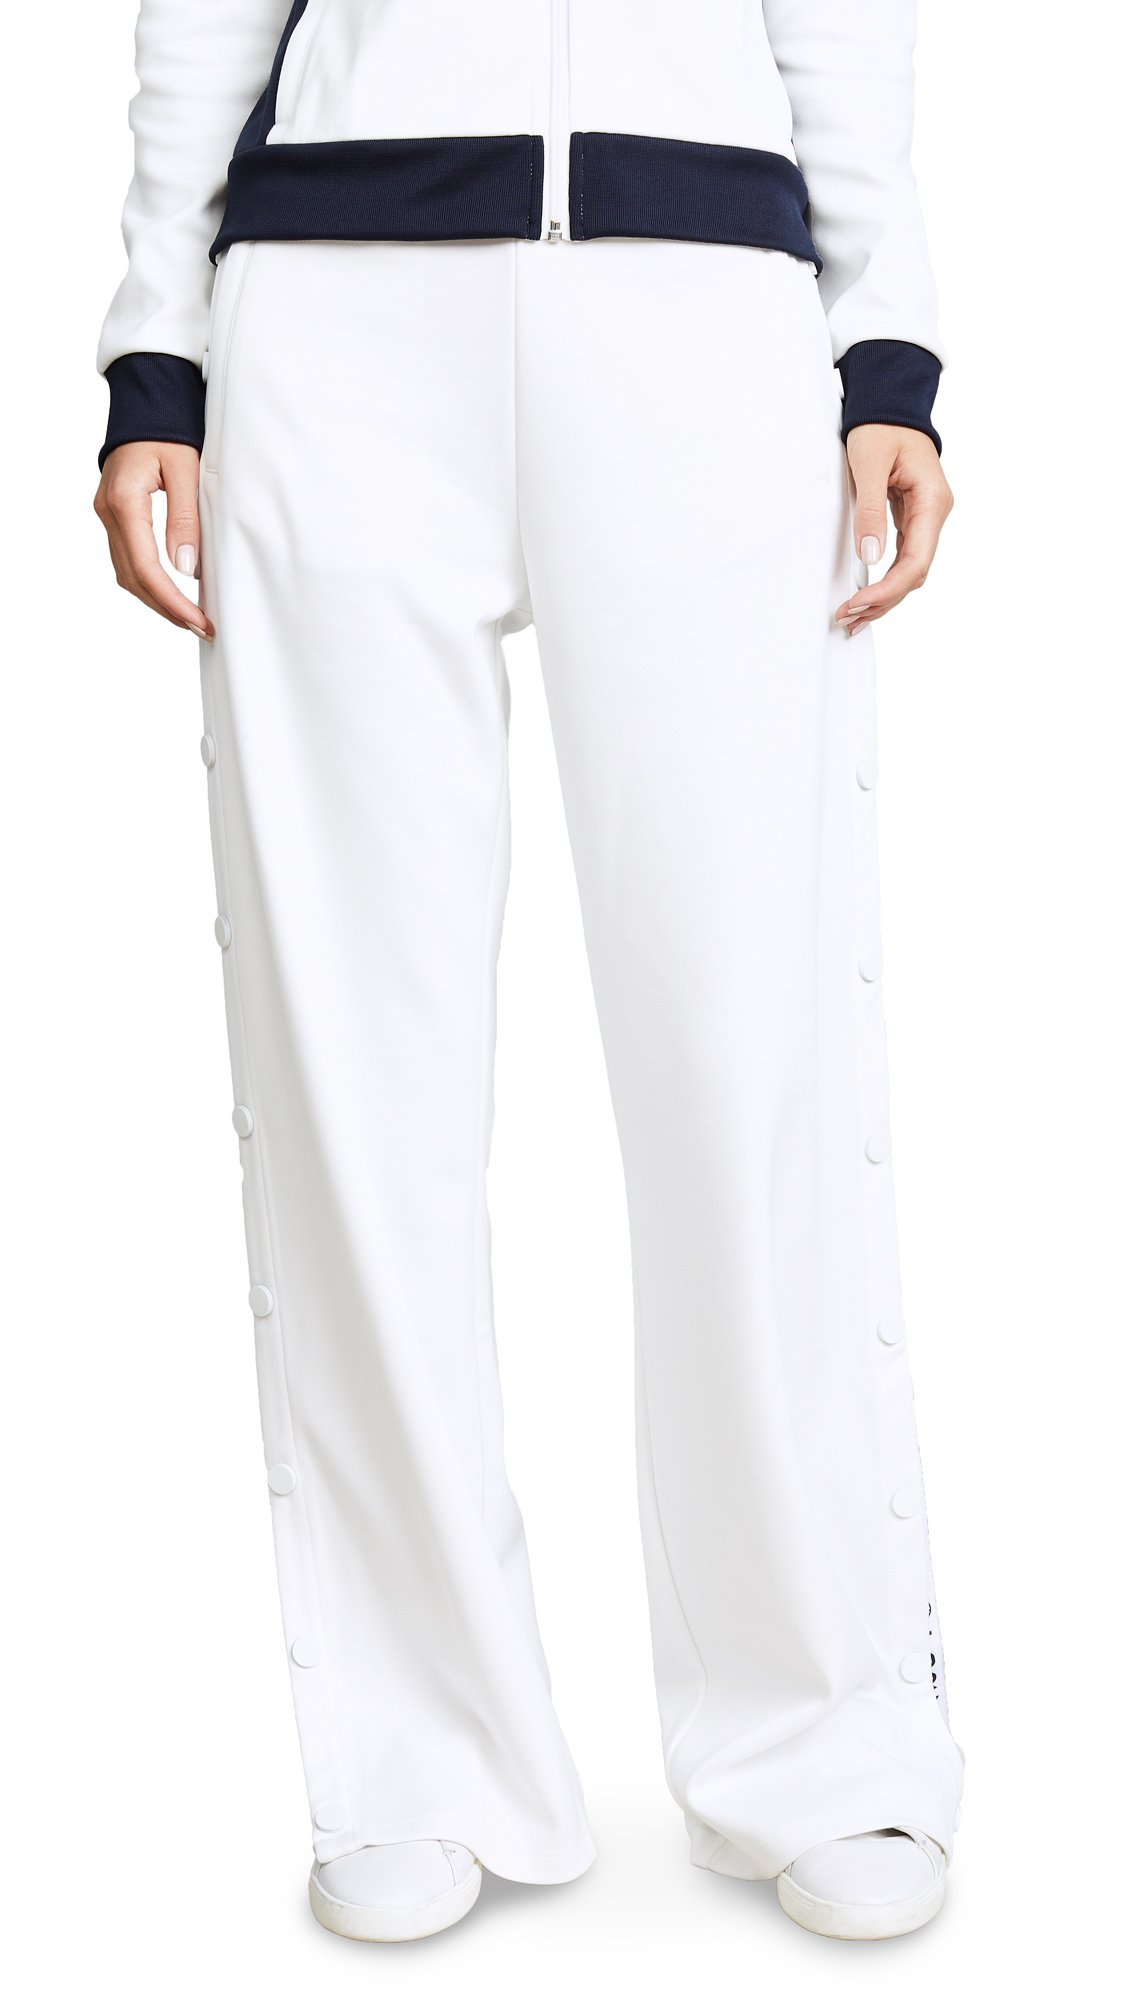 Tory Sport Women's Banner Tear Away Track Pants, Snow White, Large